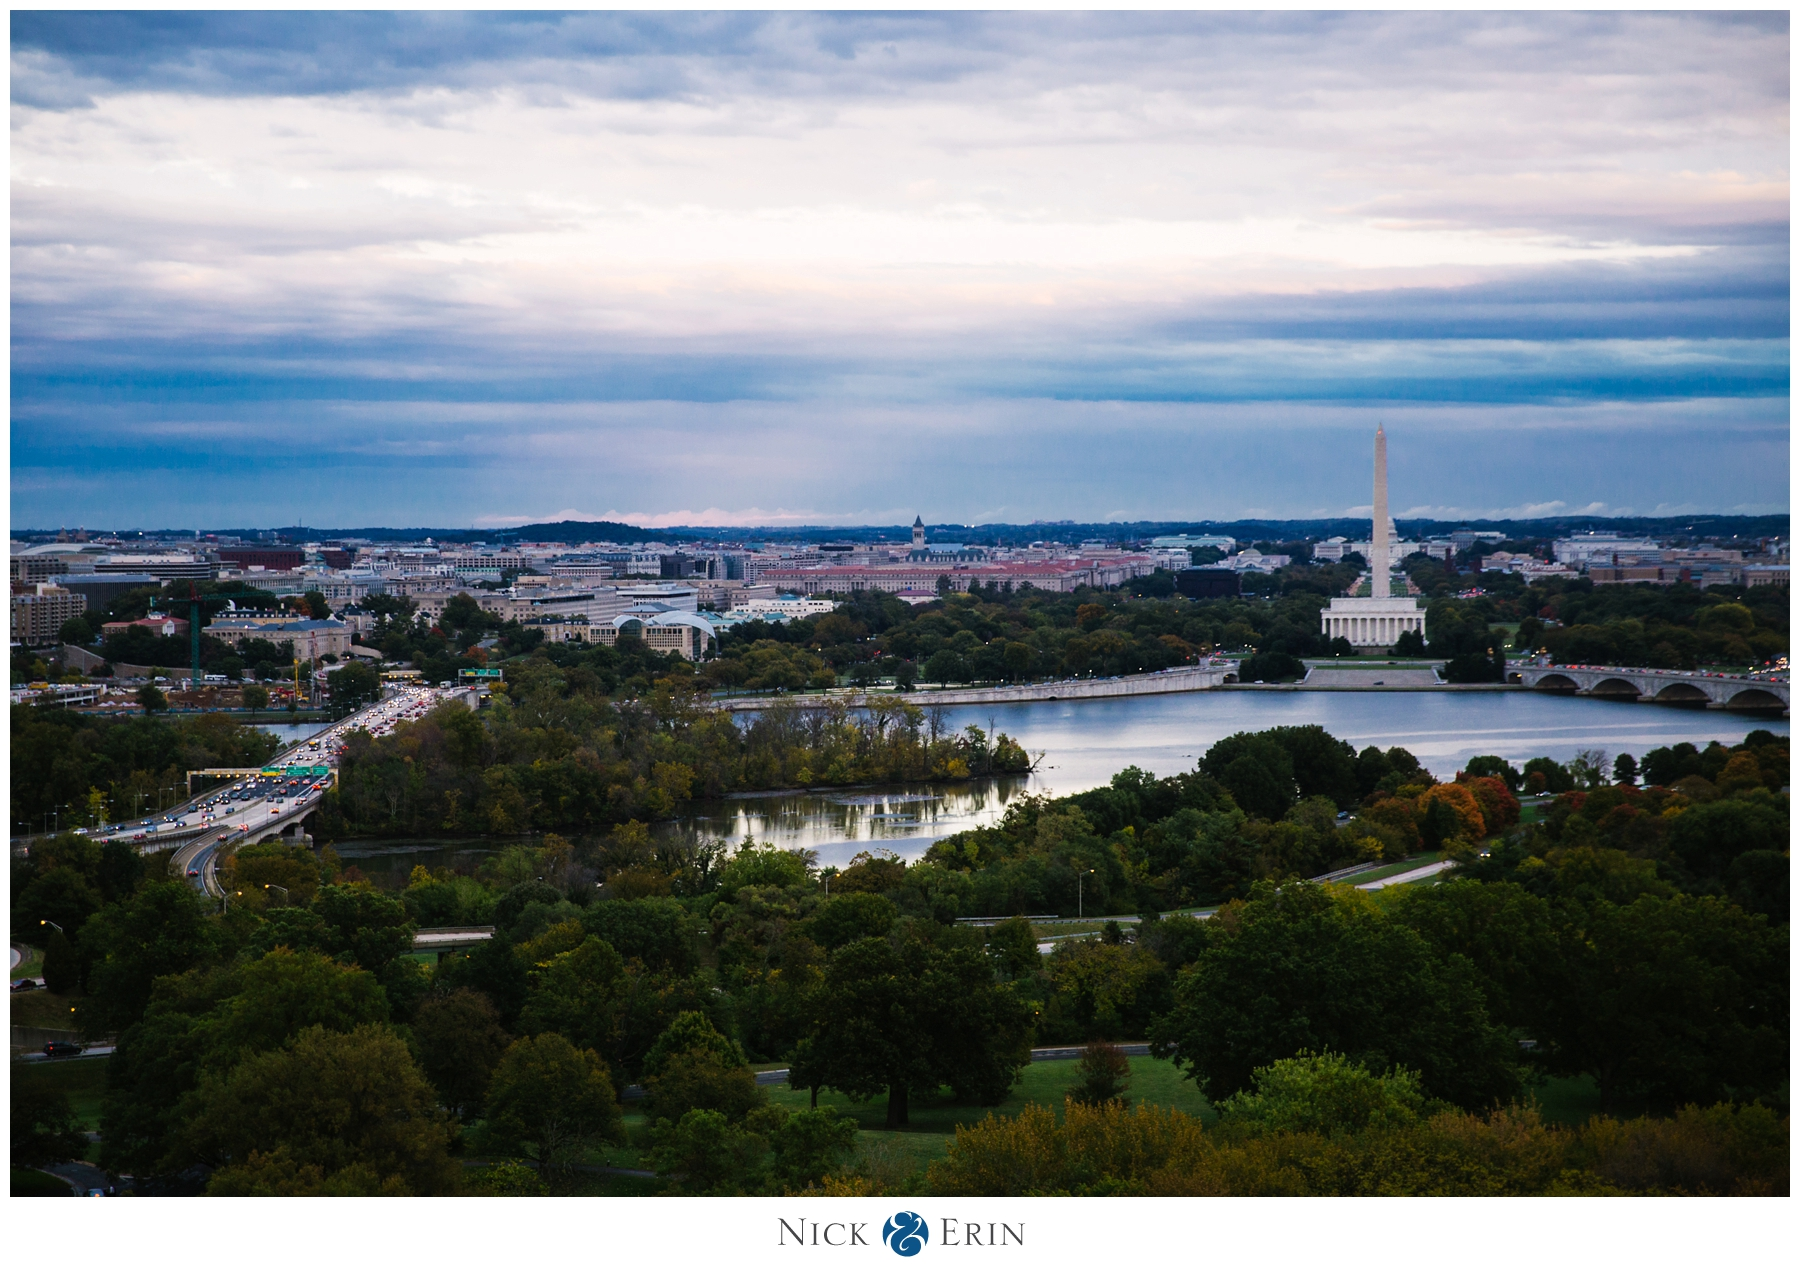 donner_photography_washington-dc-wedding_alanna-josh_0010